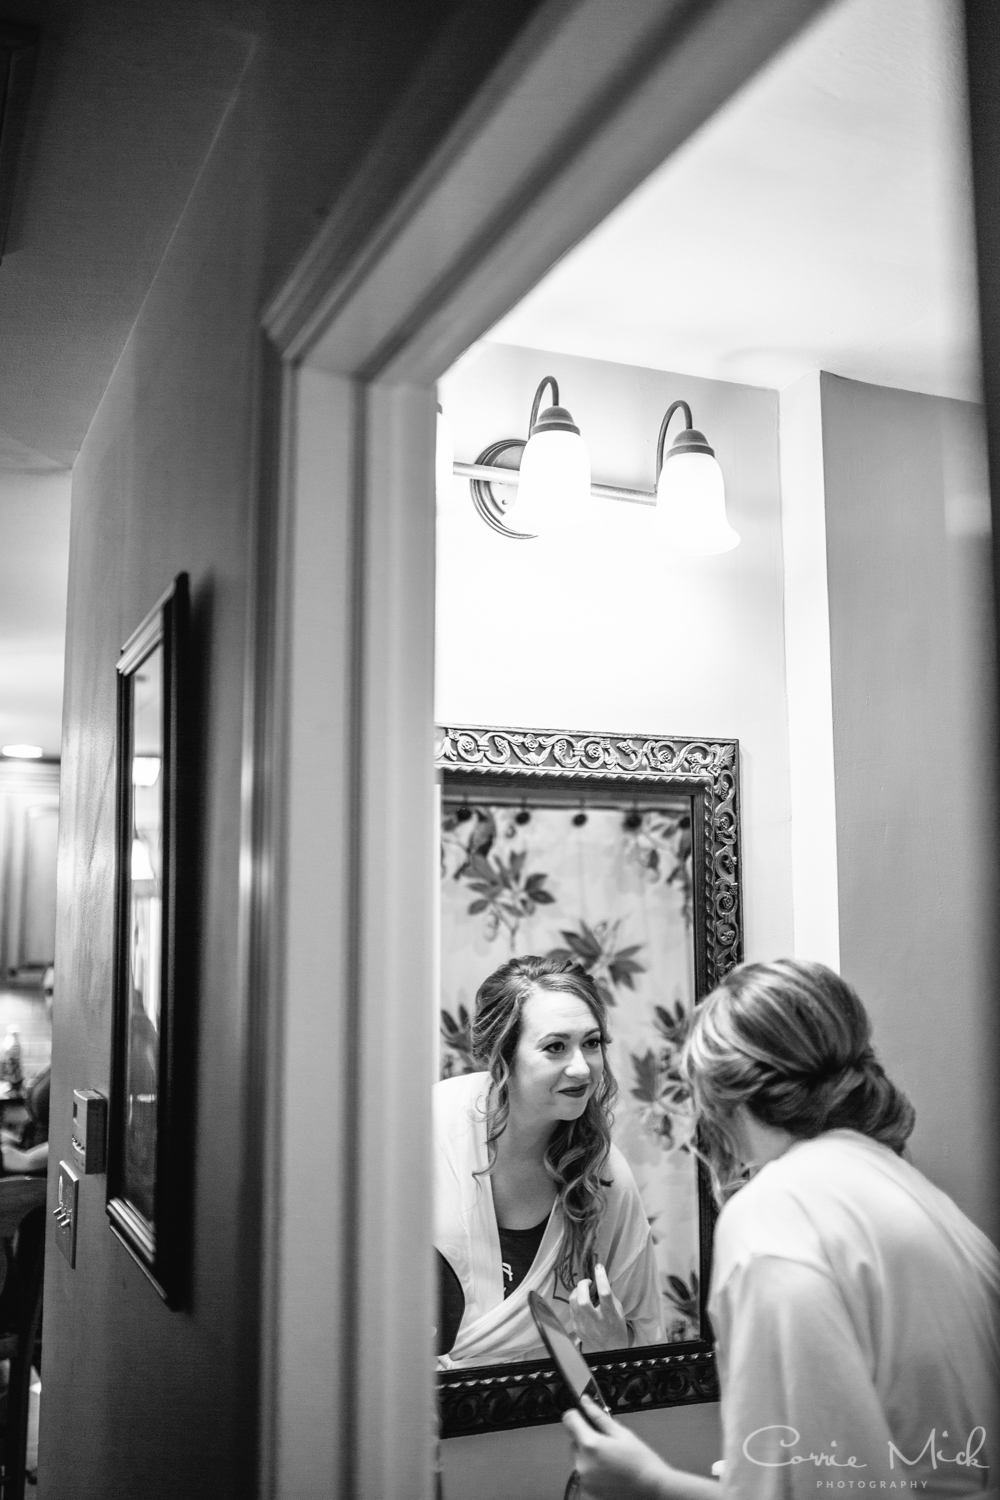 Fun, Beautiful Wedding - Portland, Oregon Photographer - Corrie Mick Photography-20.jpg